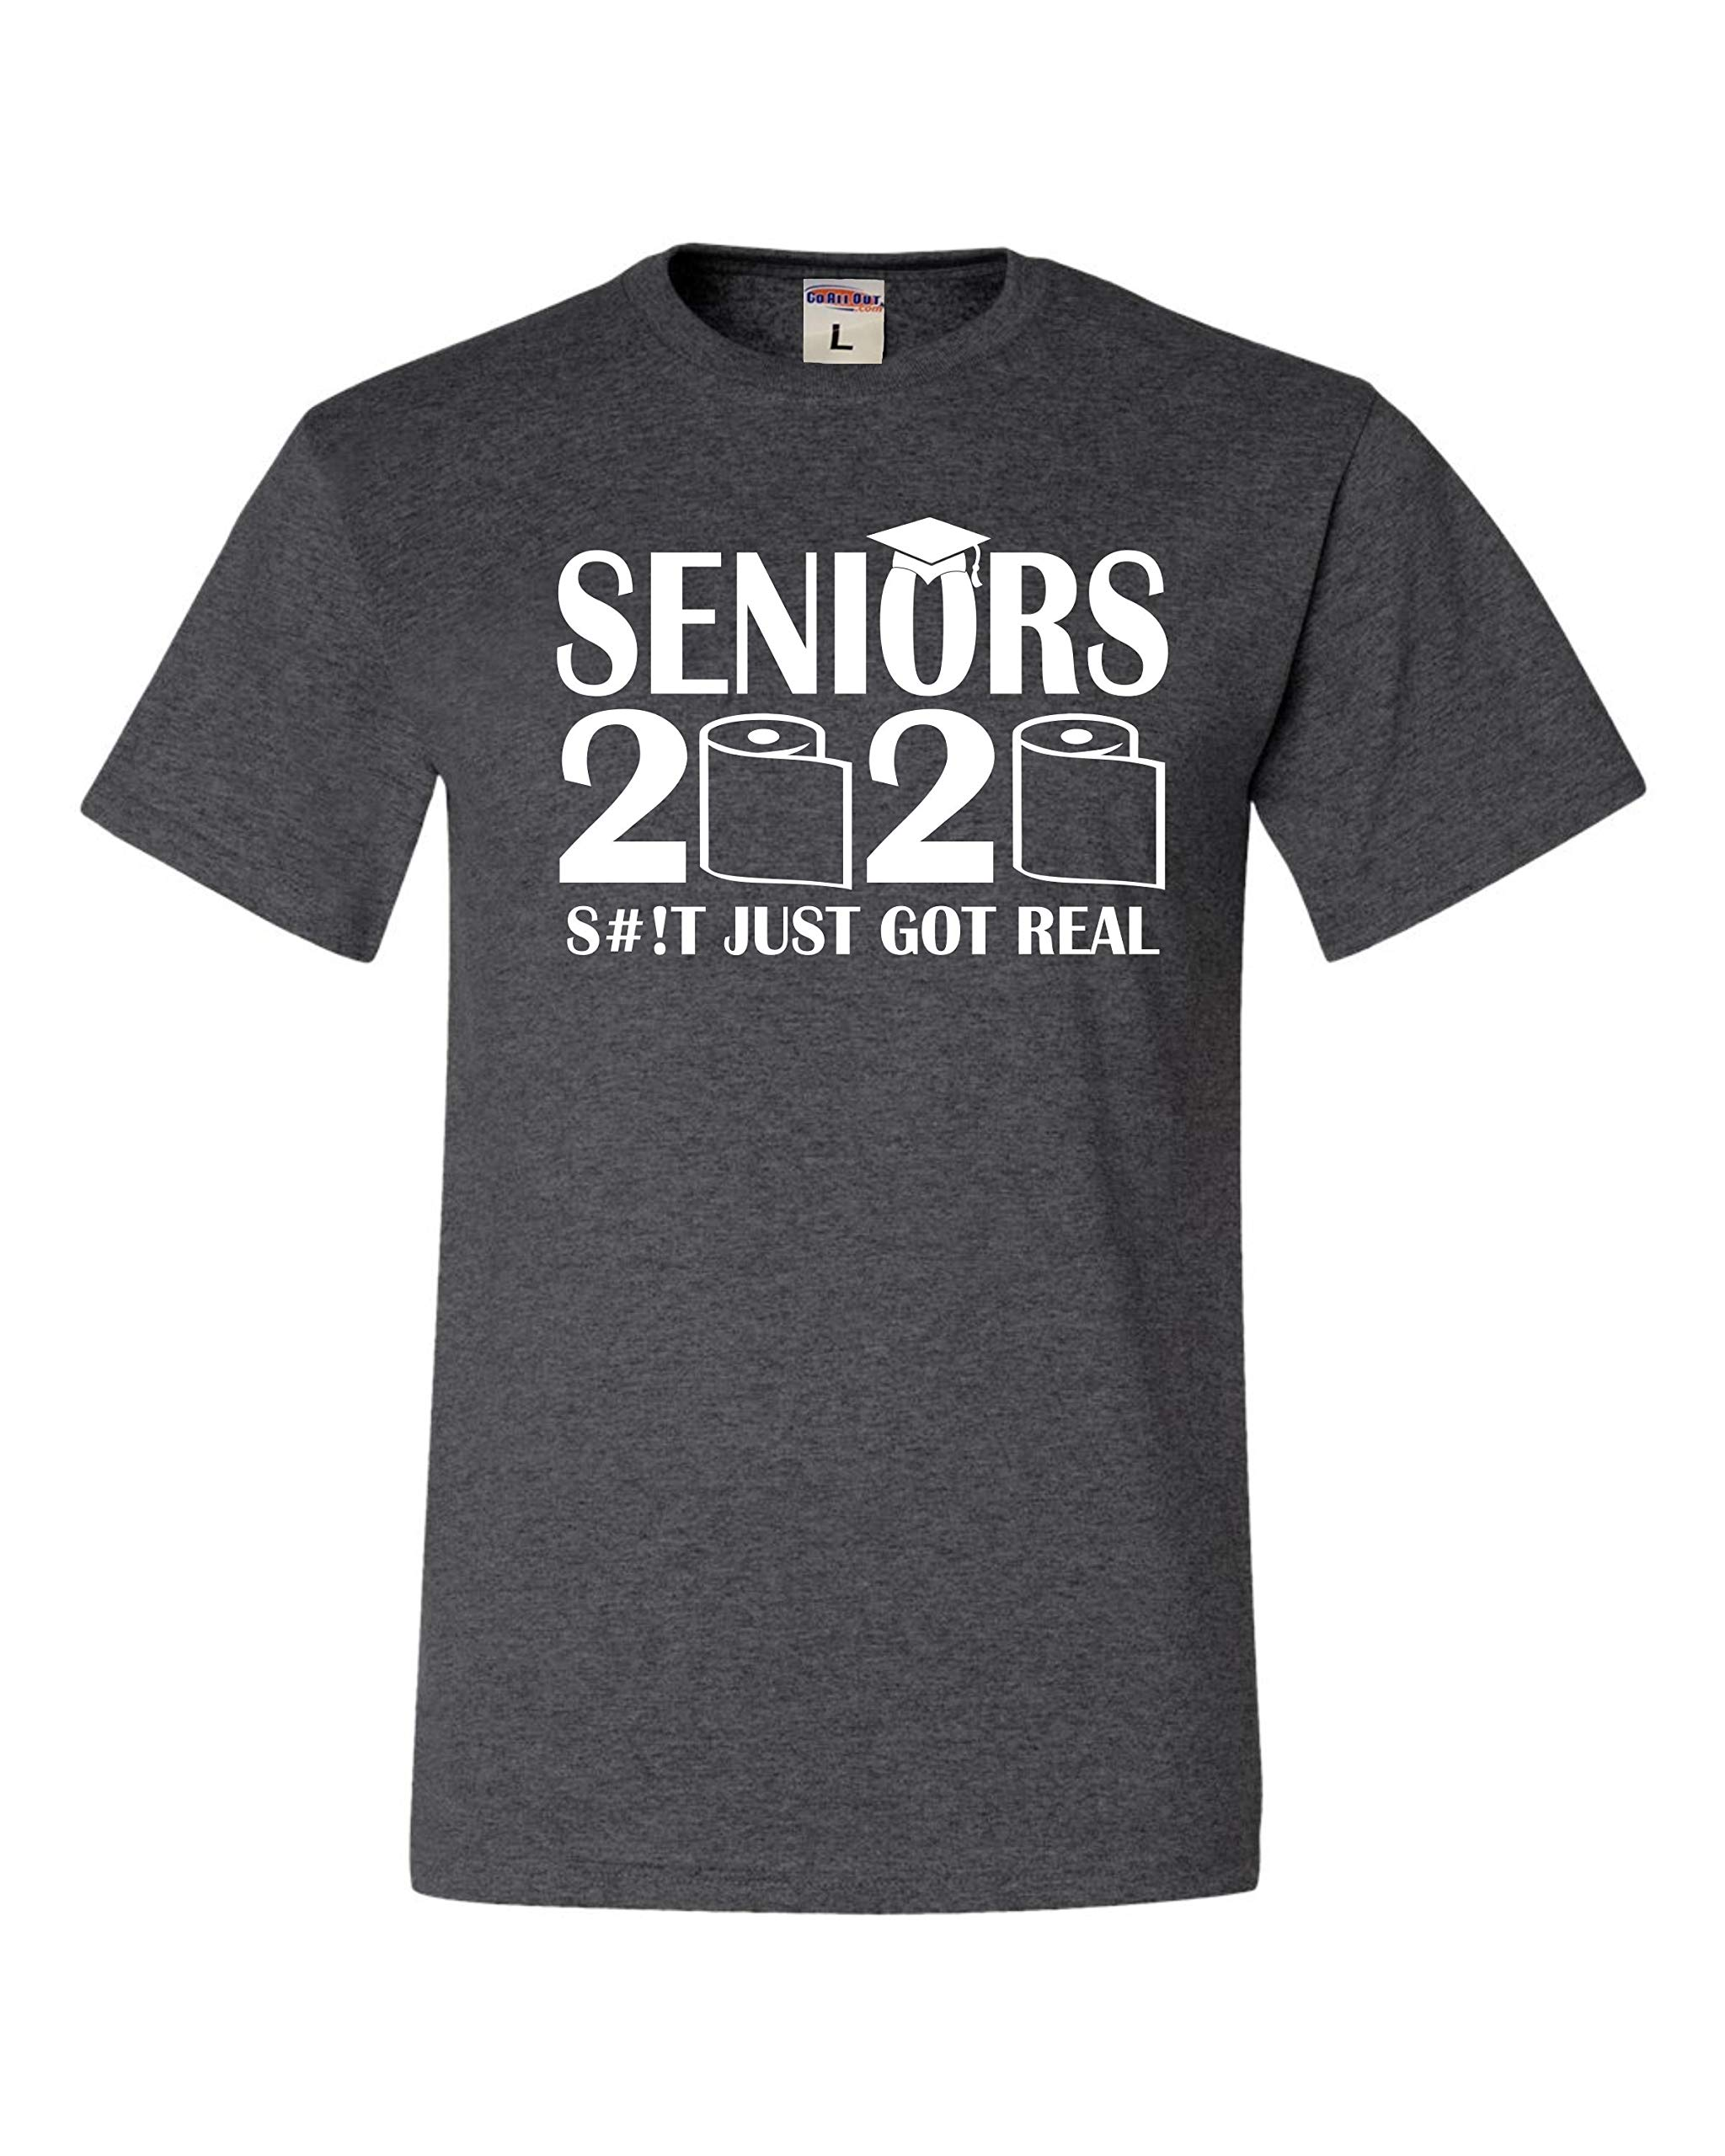 Go All Out Adult Seniors 2020 Funny Graduation S#!t Just Got Real T-Shirt